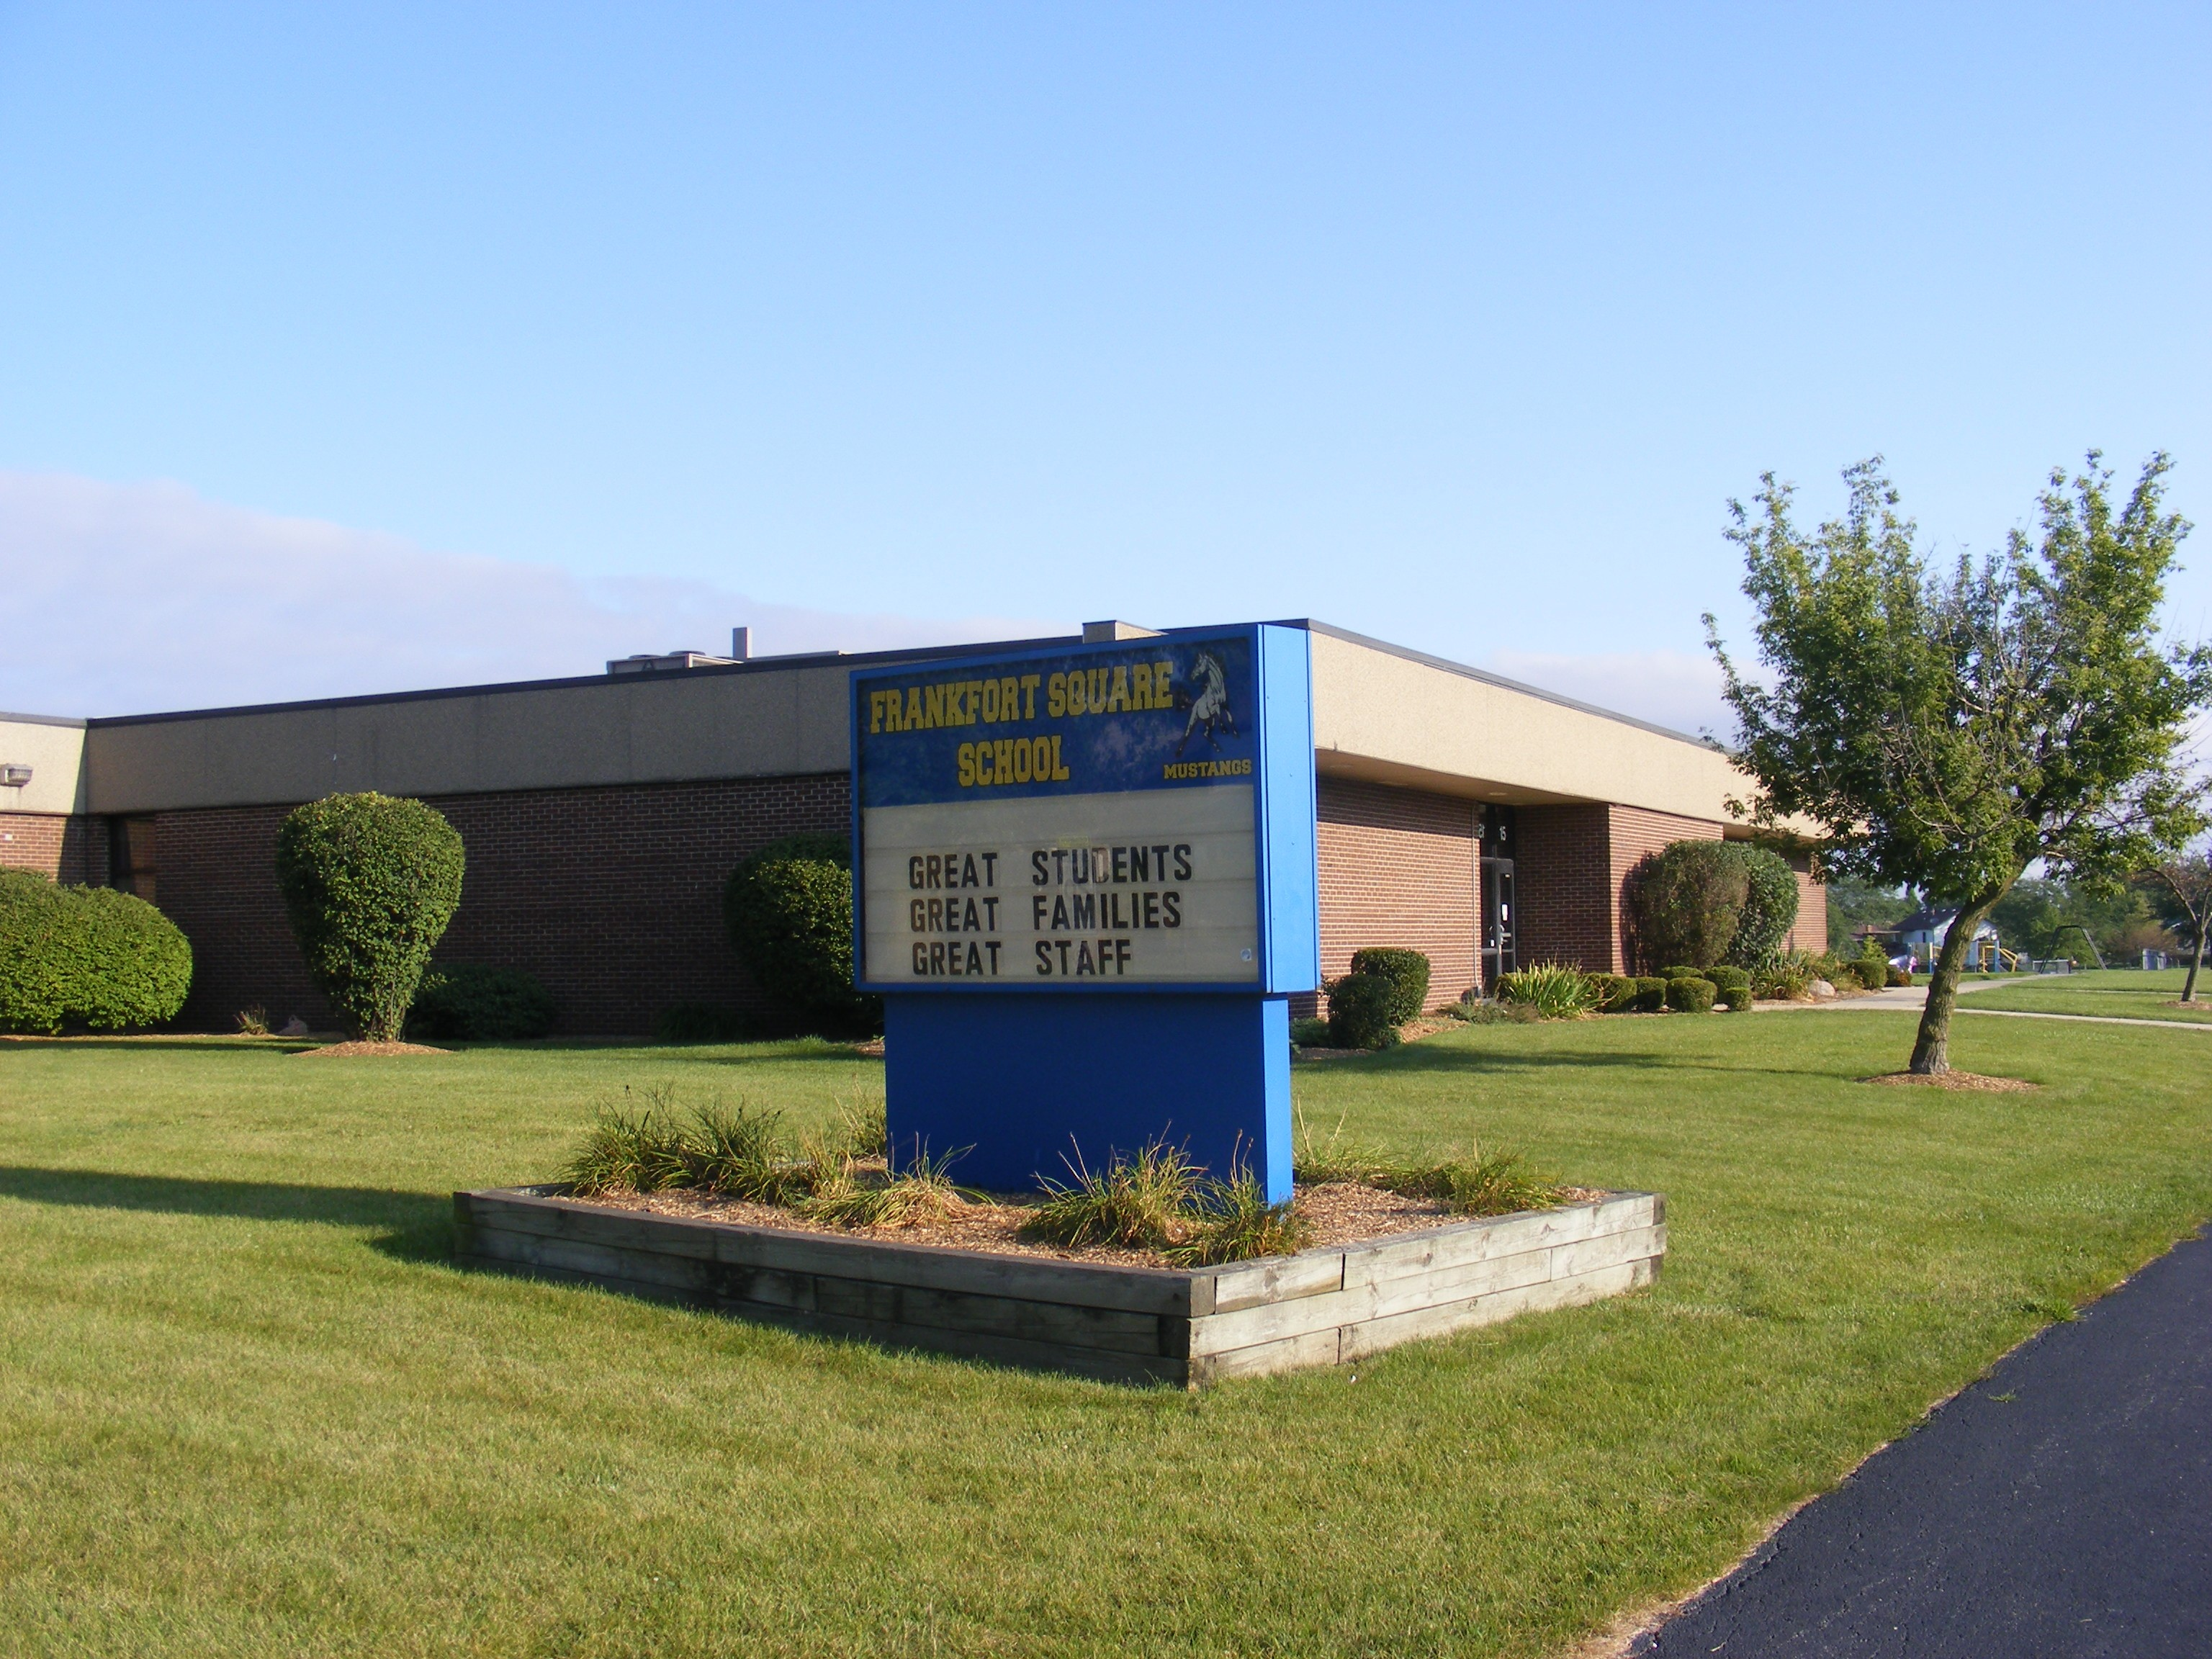 Frankfort Square School